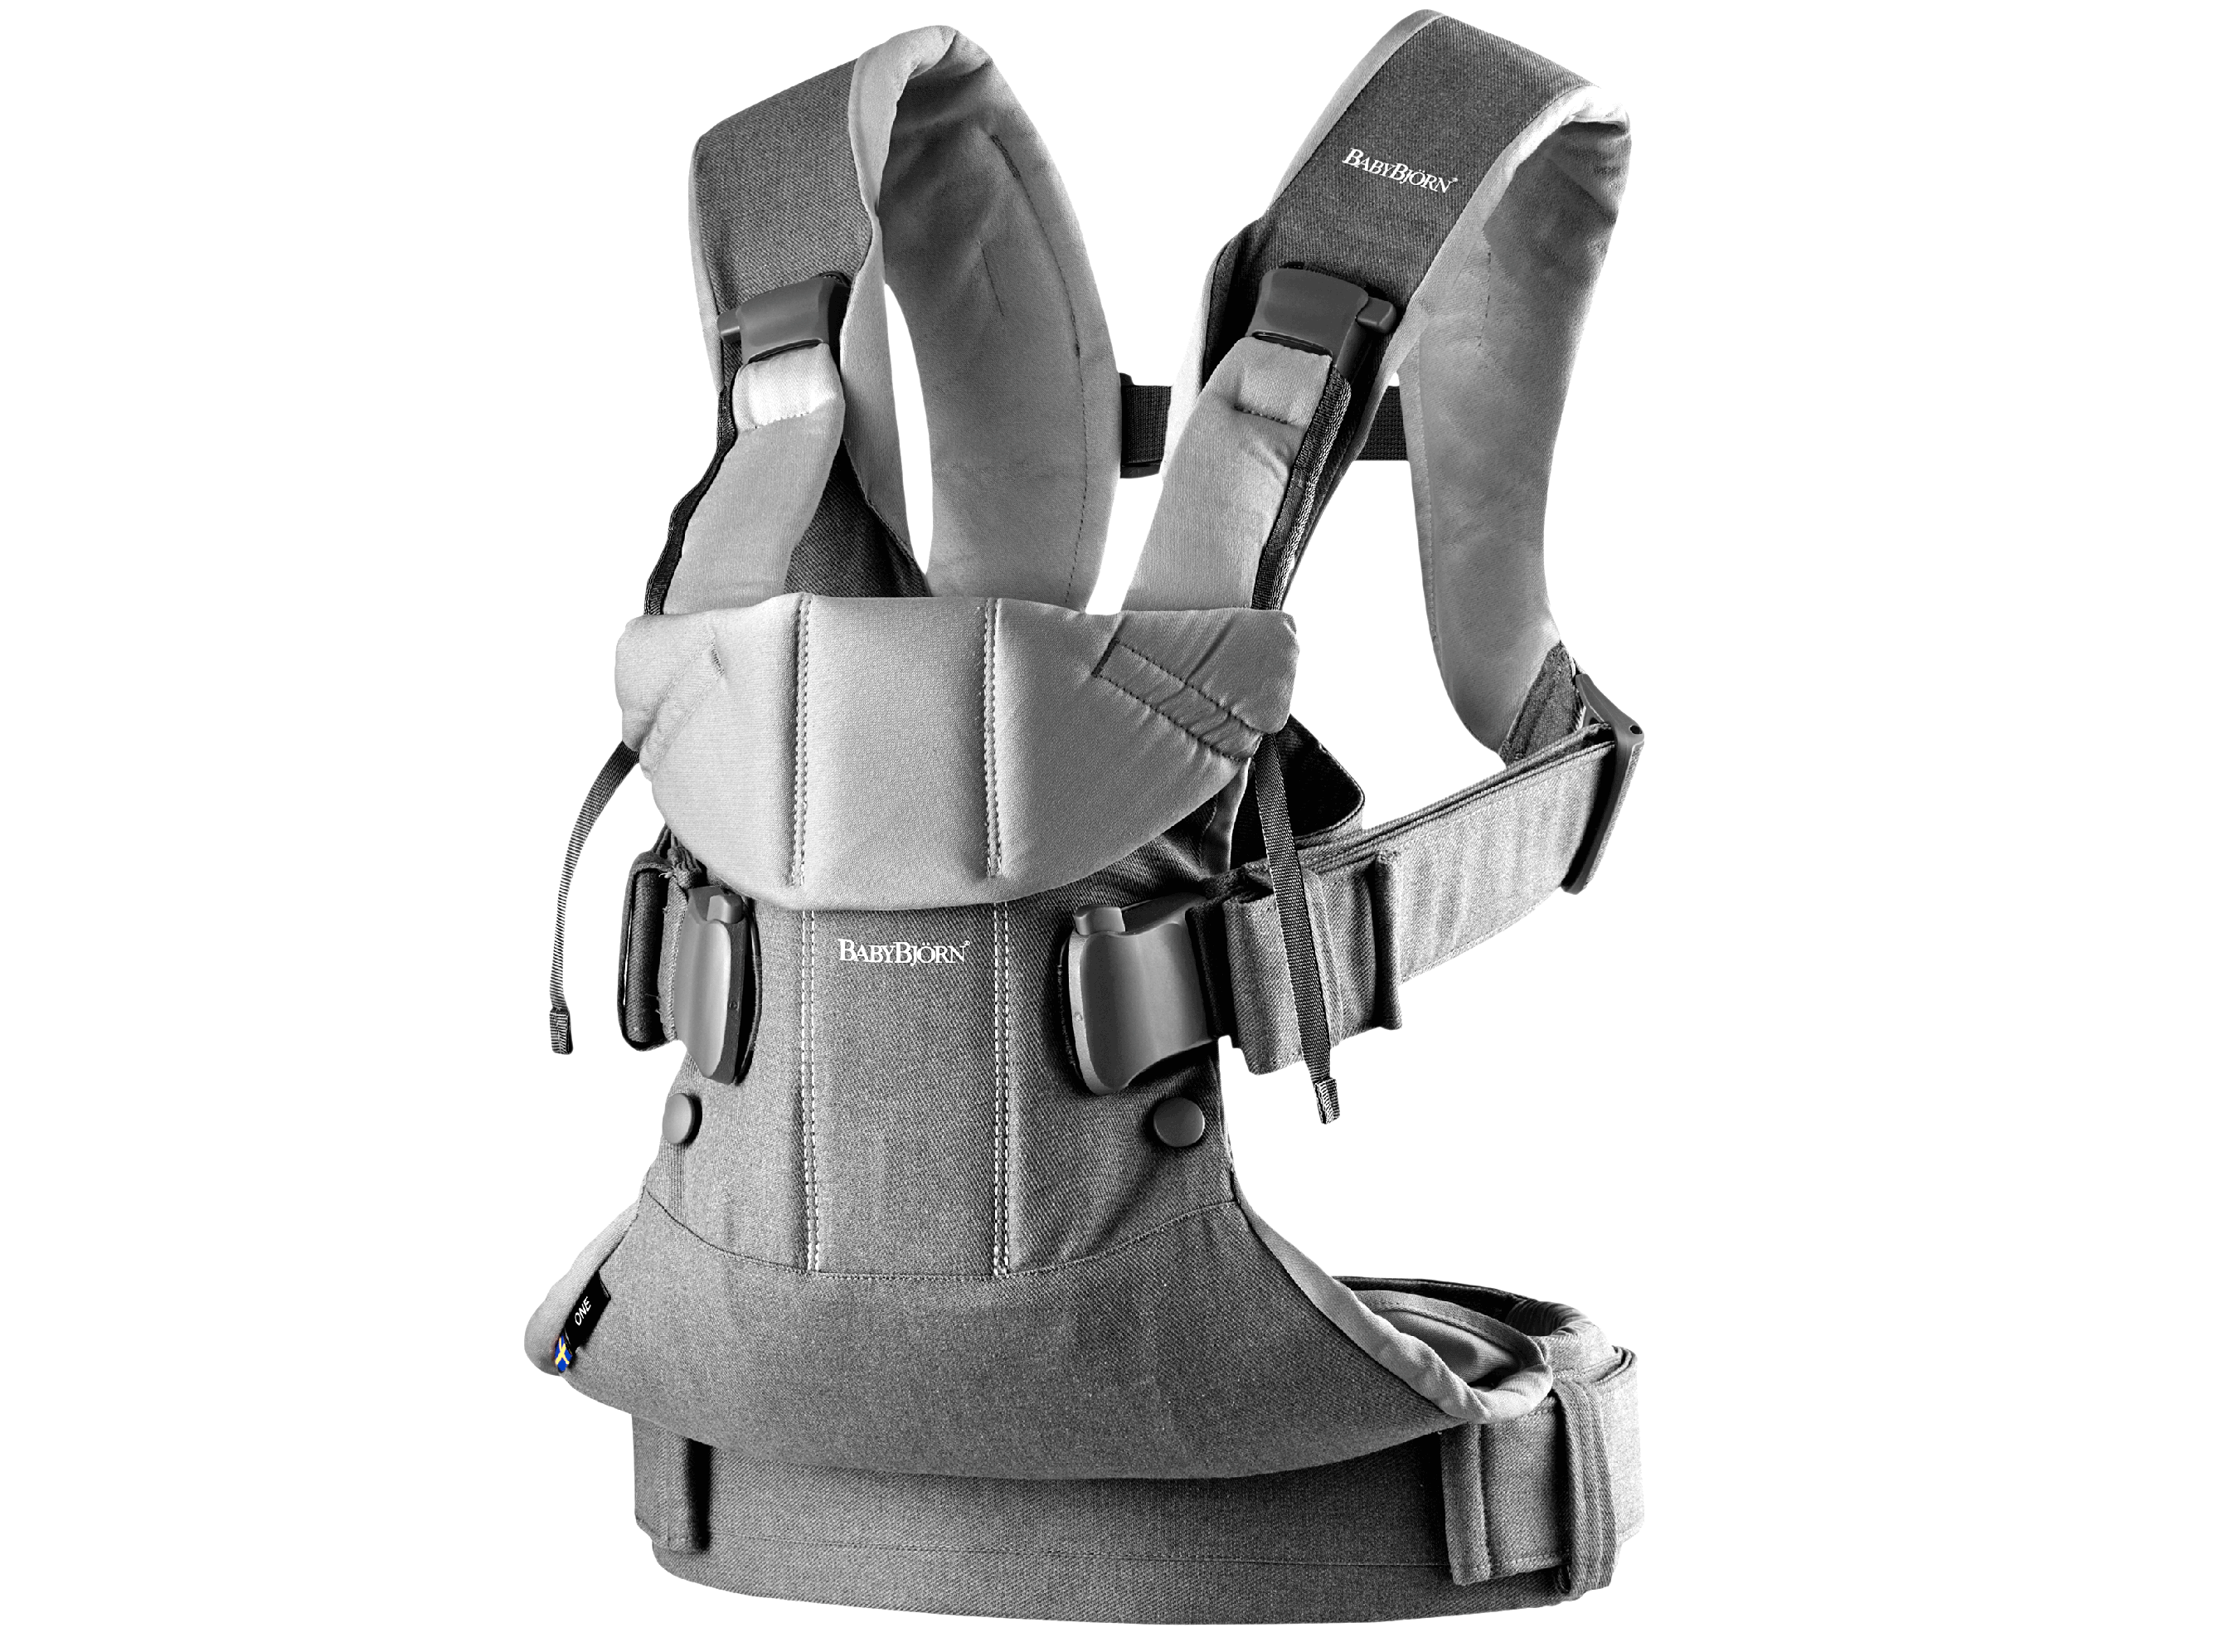 BABYBJÖRN Baby Carrier One - Denim grey/Dark grey, Cotton Mix.